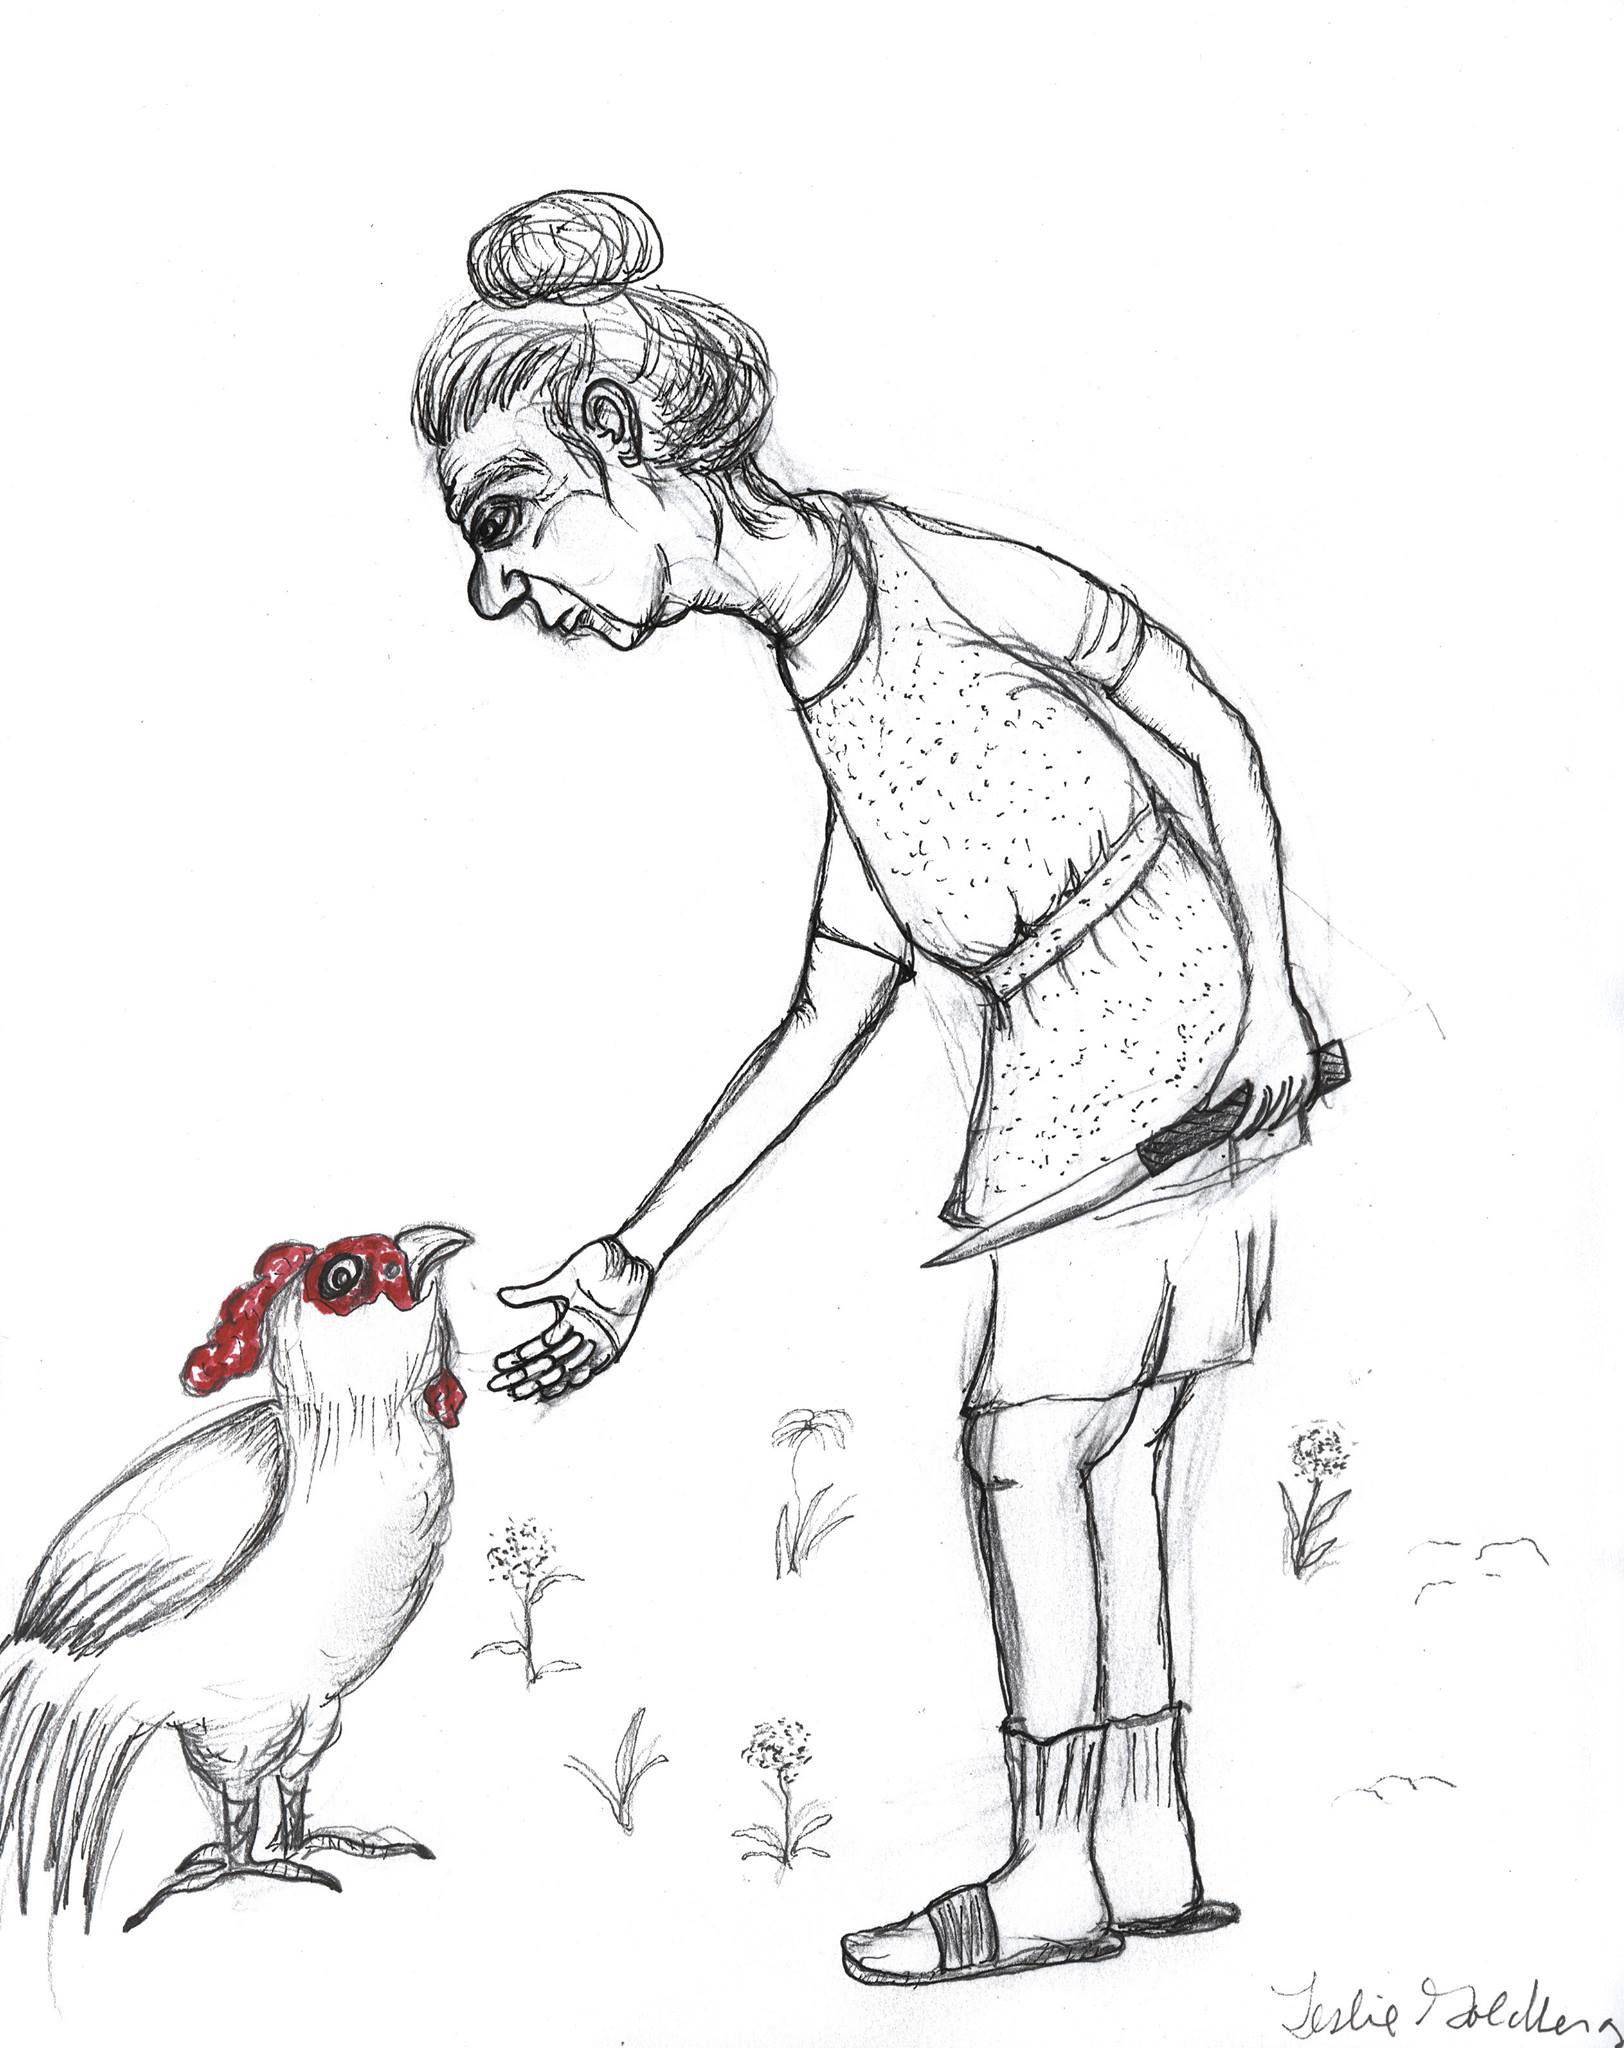 Drawing of woman with knife approaching a chicken, by Leslie Goldberg